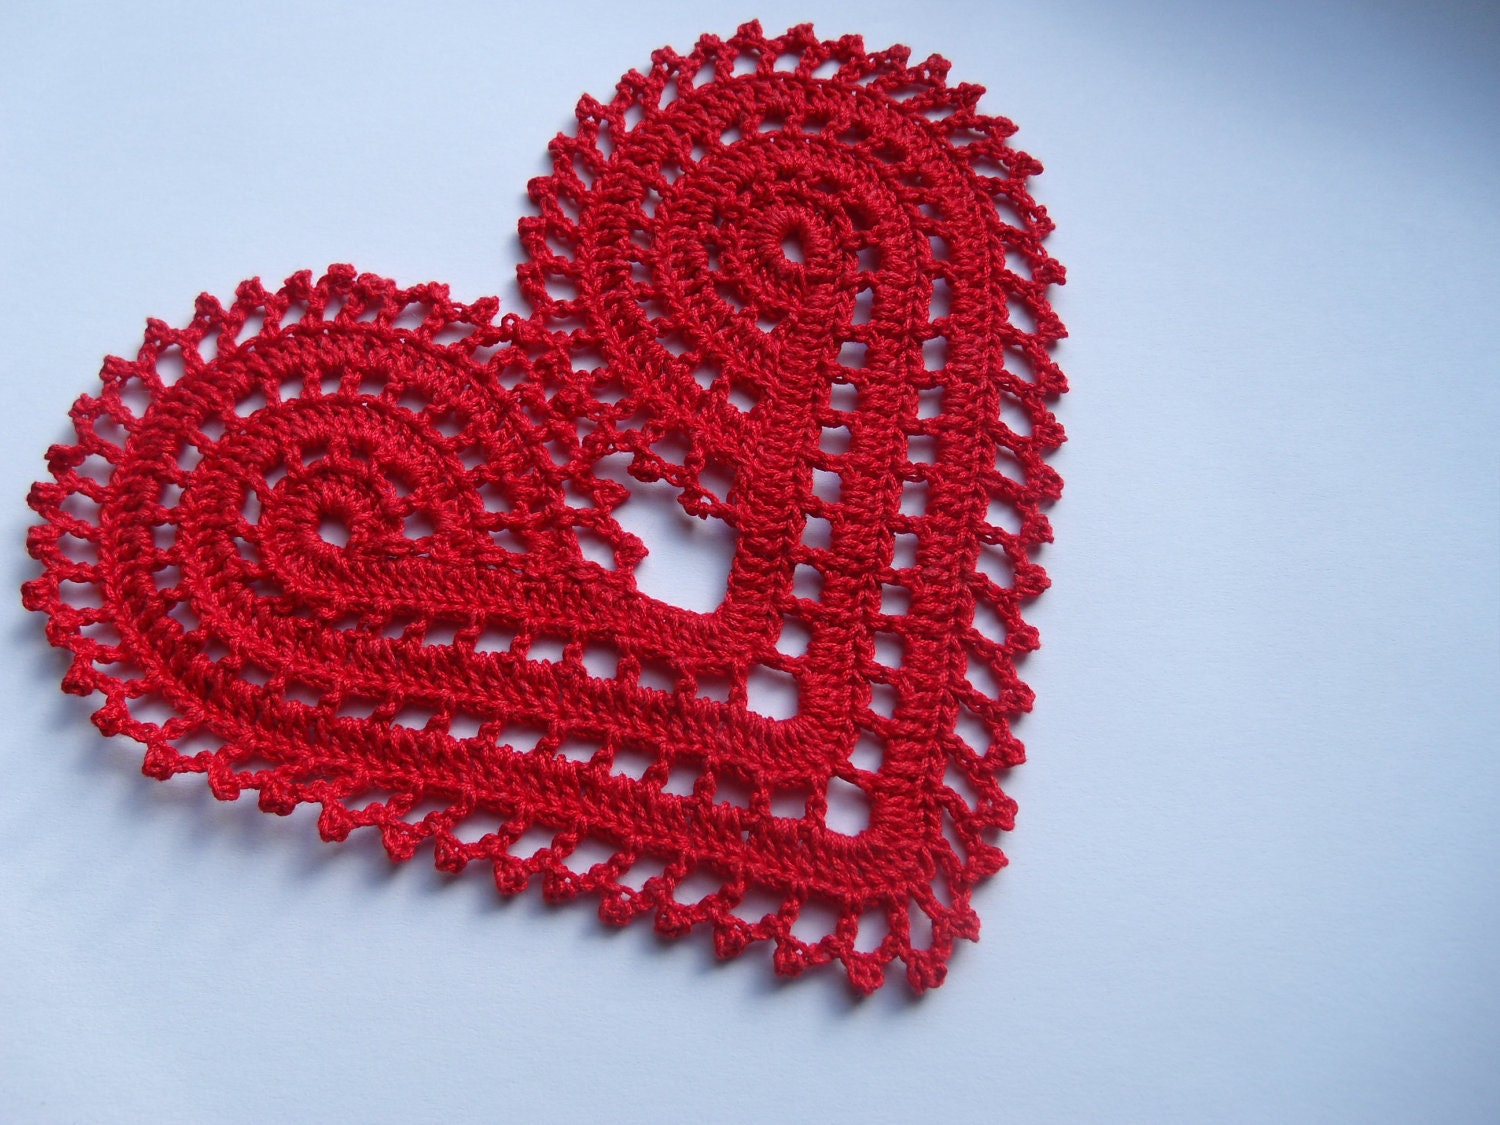 Crochet Stitches Red Heart : Red Heart Crochet - All For Crochet